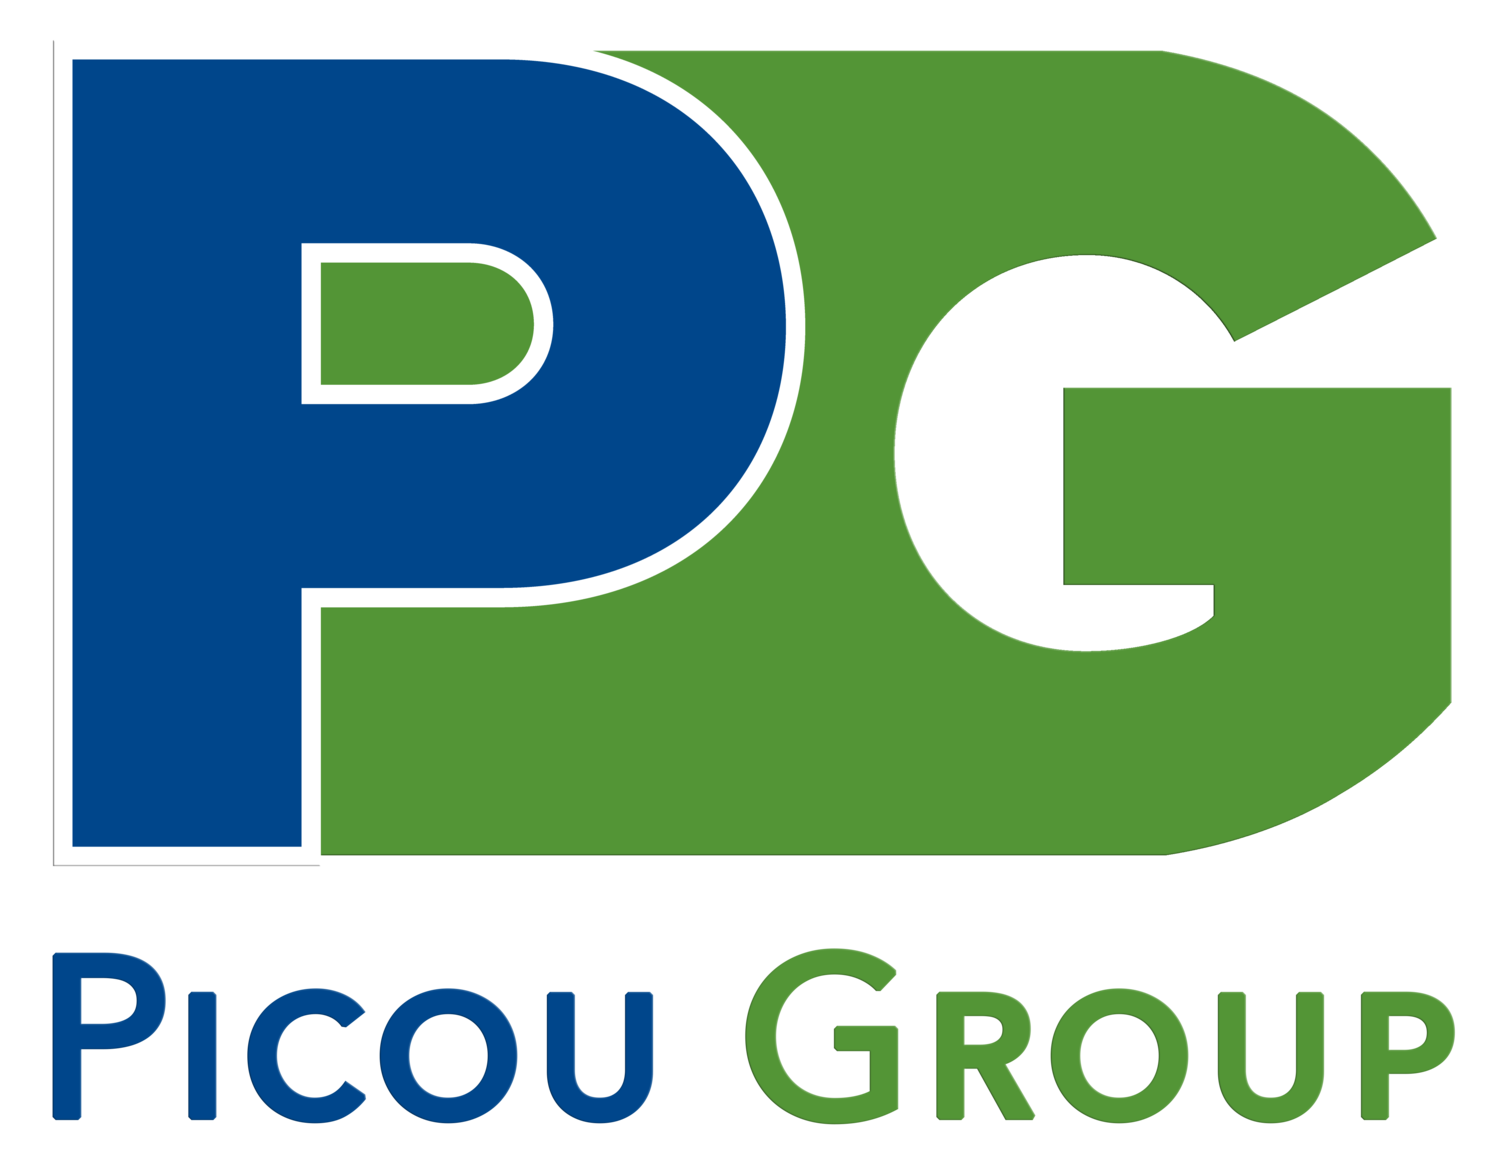 Picou Group